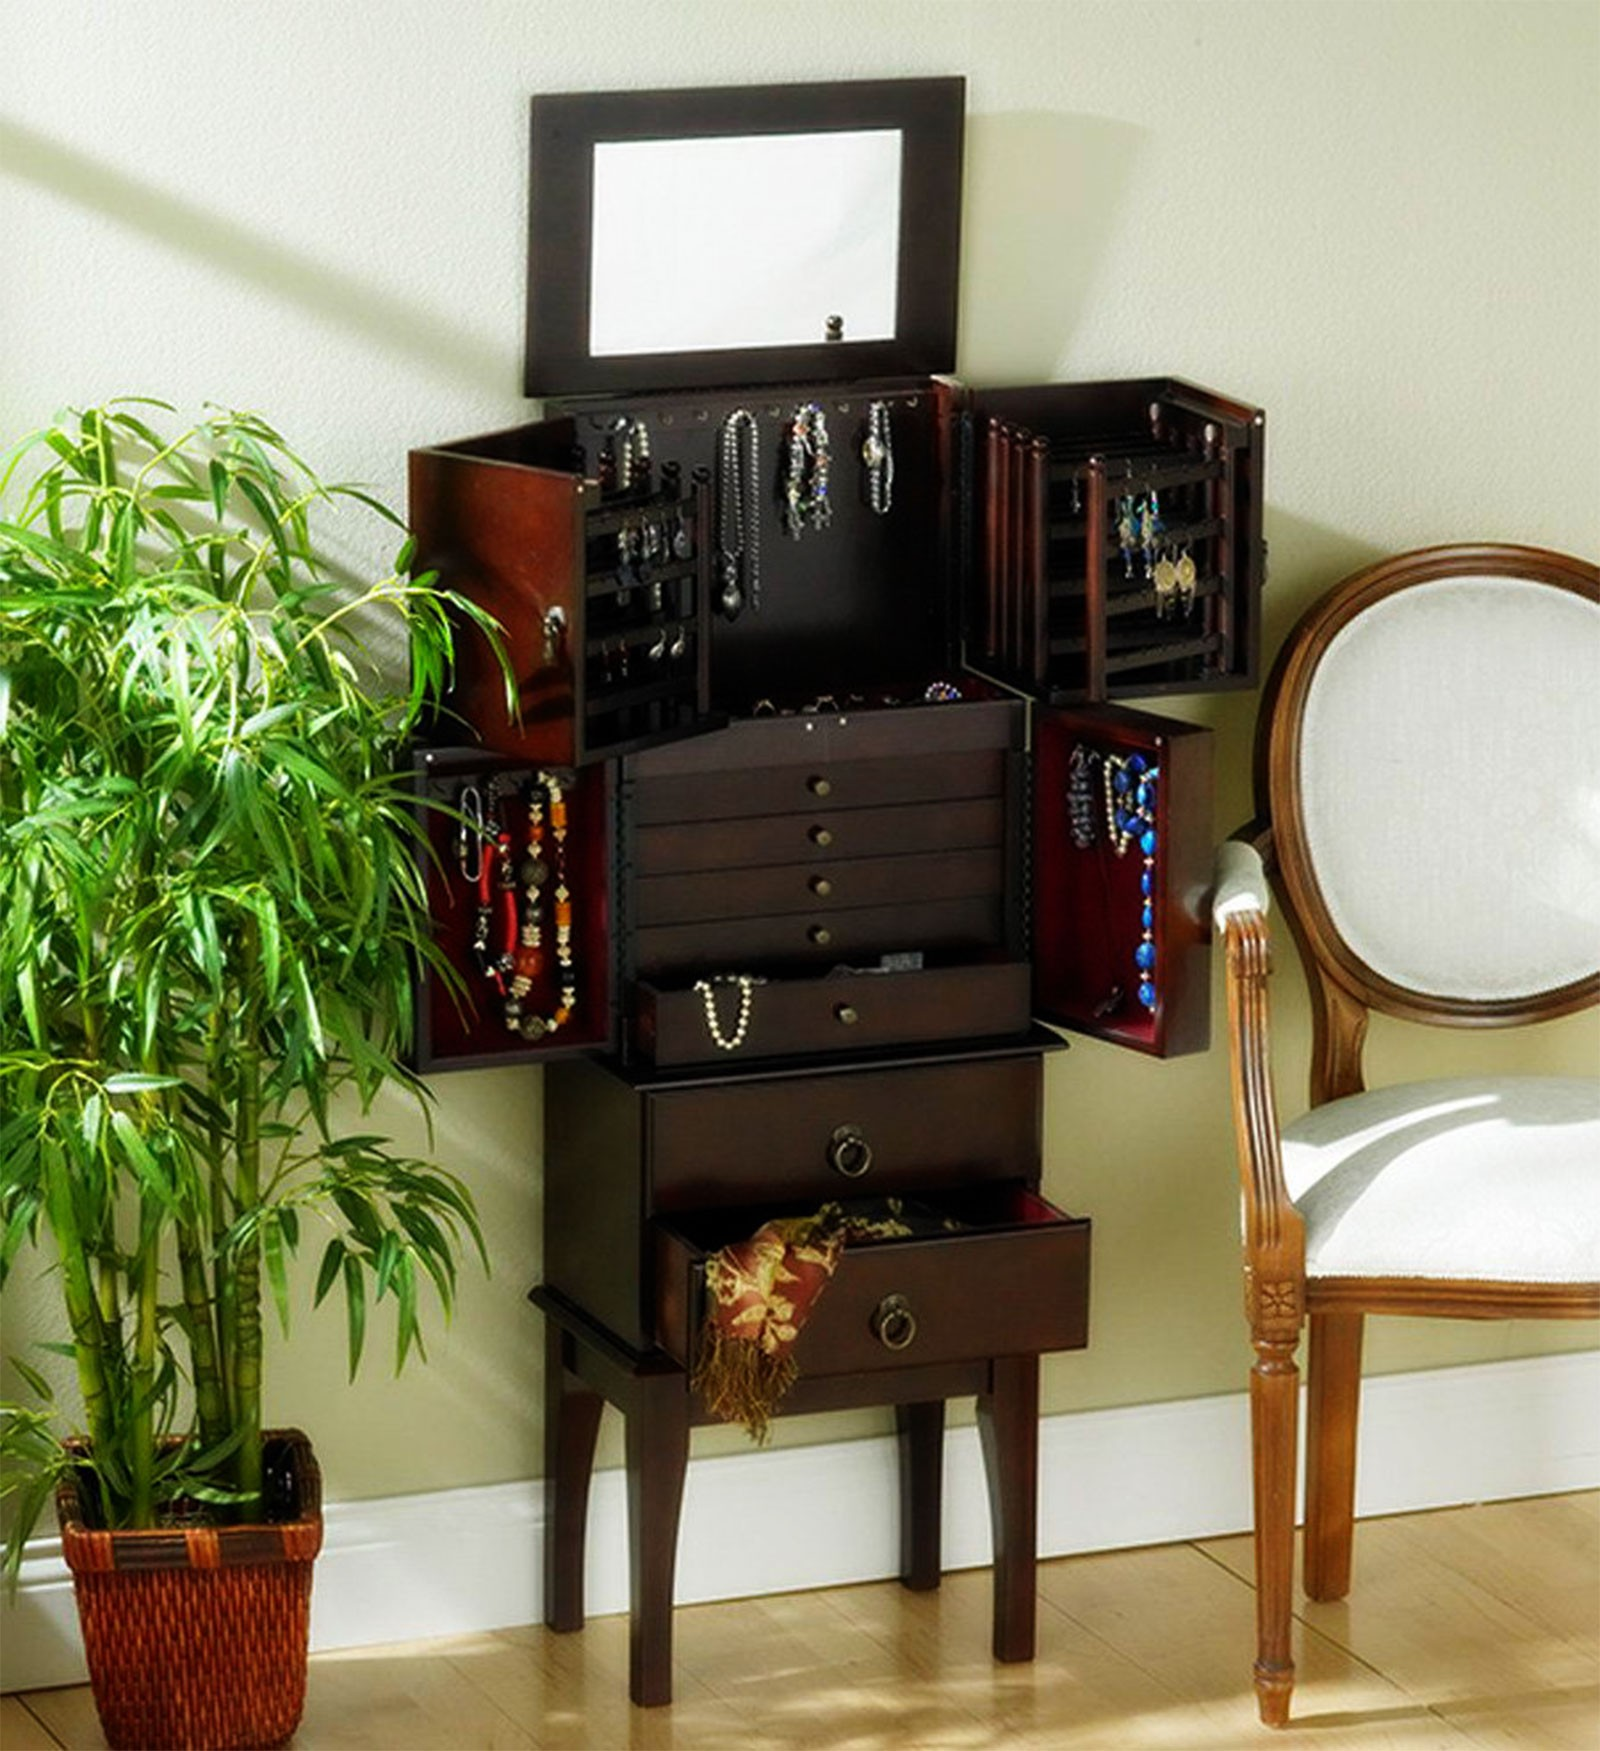 Superb Free Standing Full Length Mirror With Jewelry Storage Inside